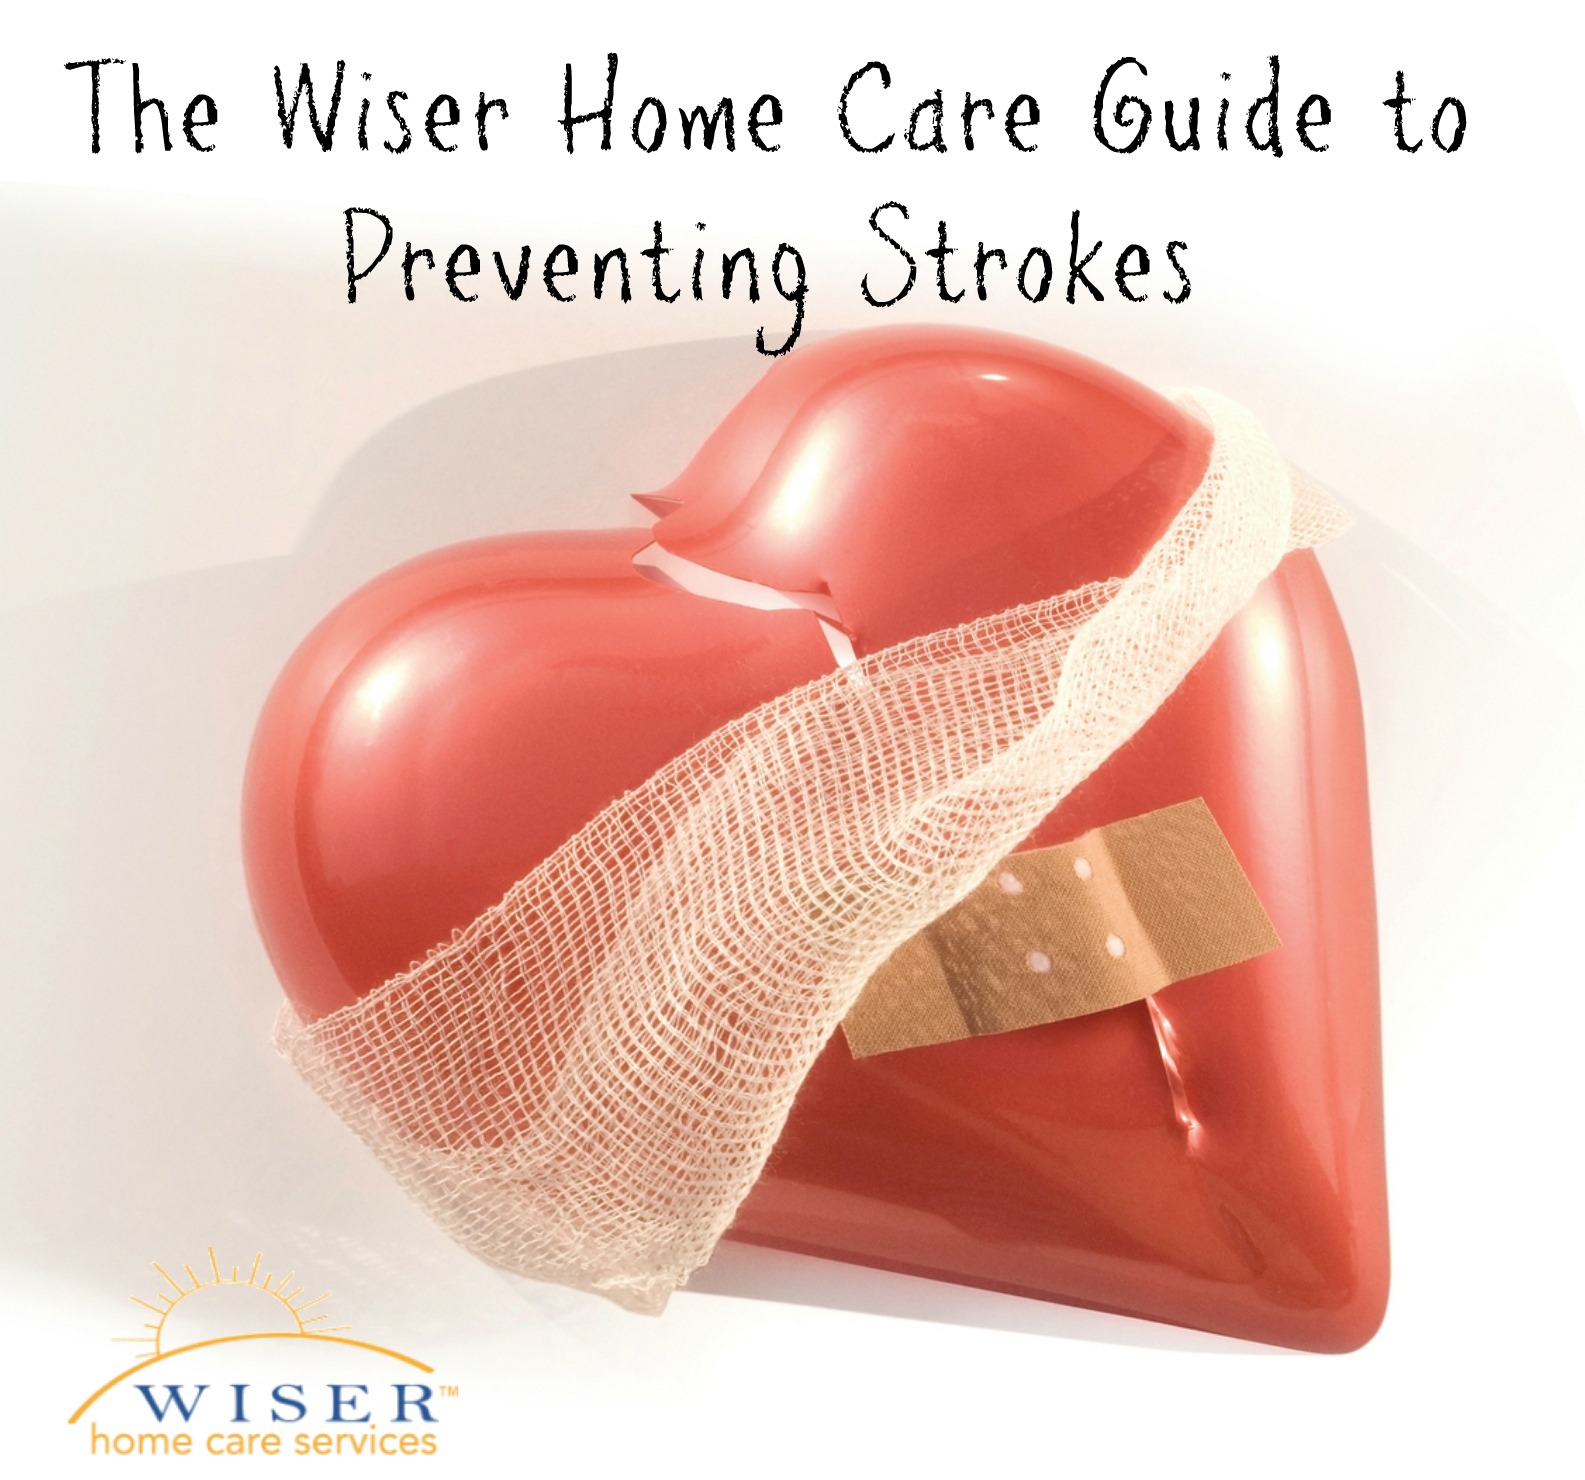 In the US, someone suffers from a stroke every 40 seconds. However, there is hope. Wiser Home Care shares their tips on how to effectively reduce strokes.